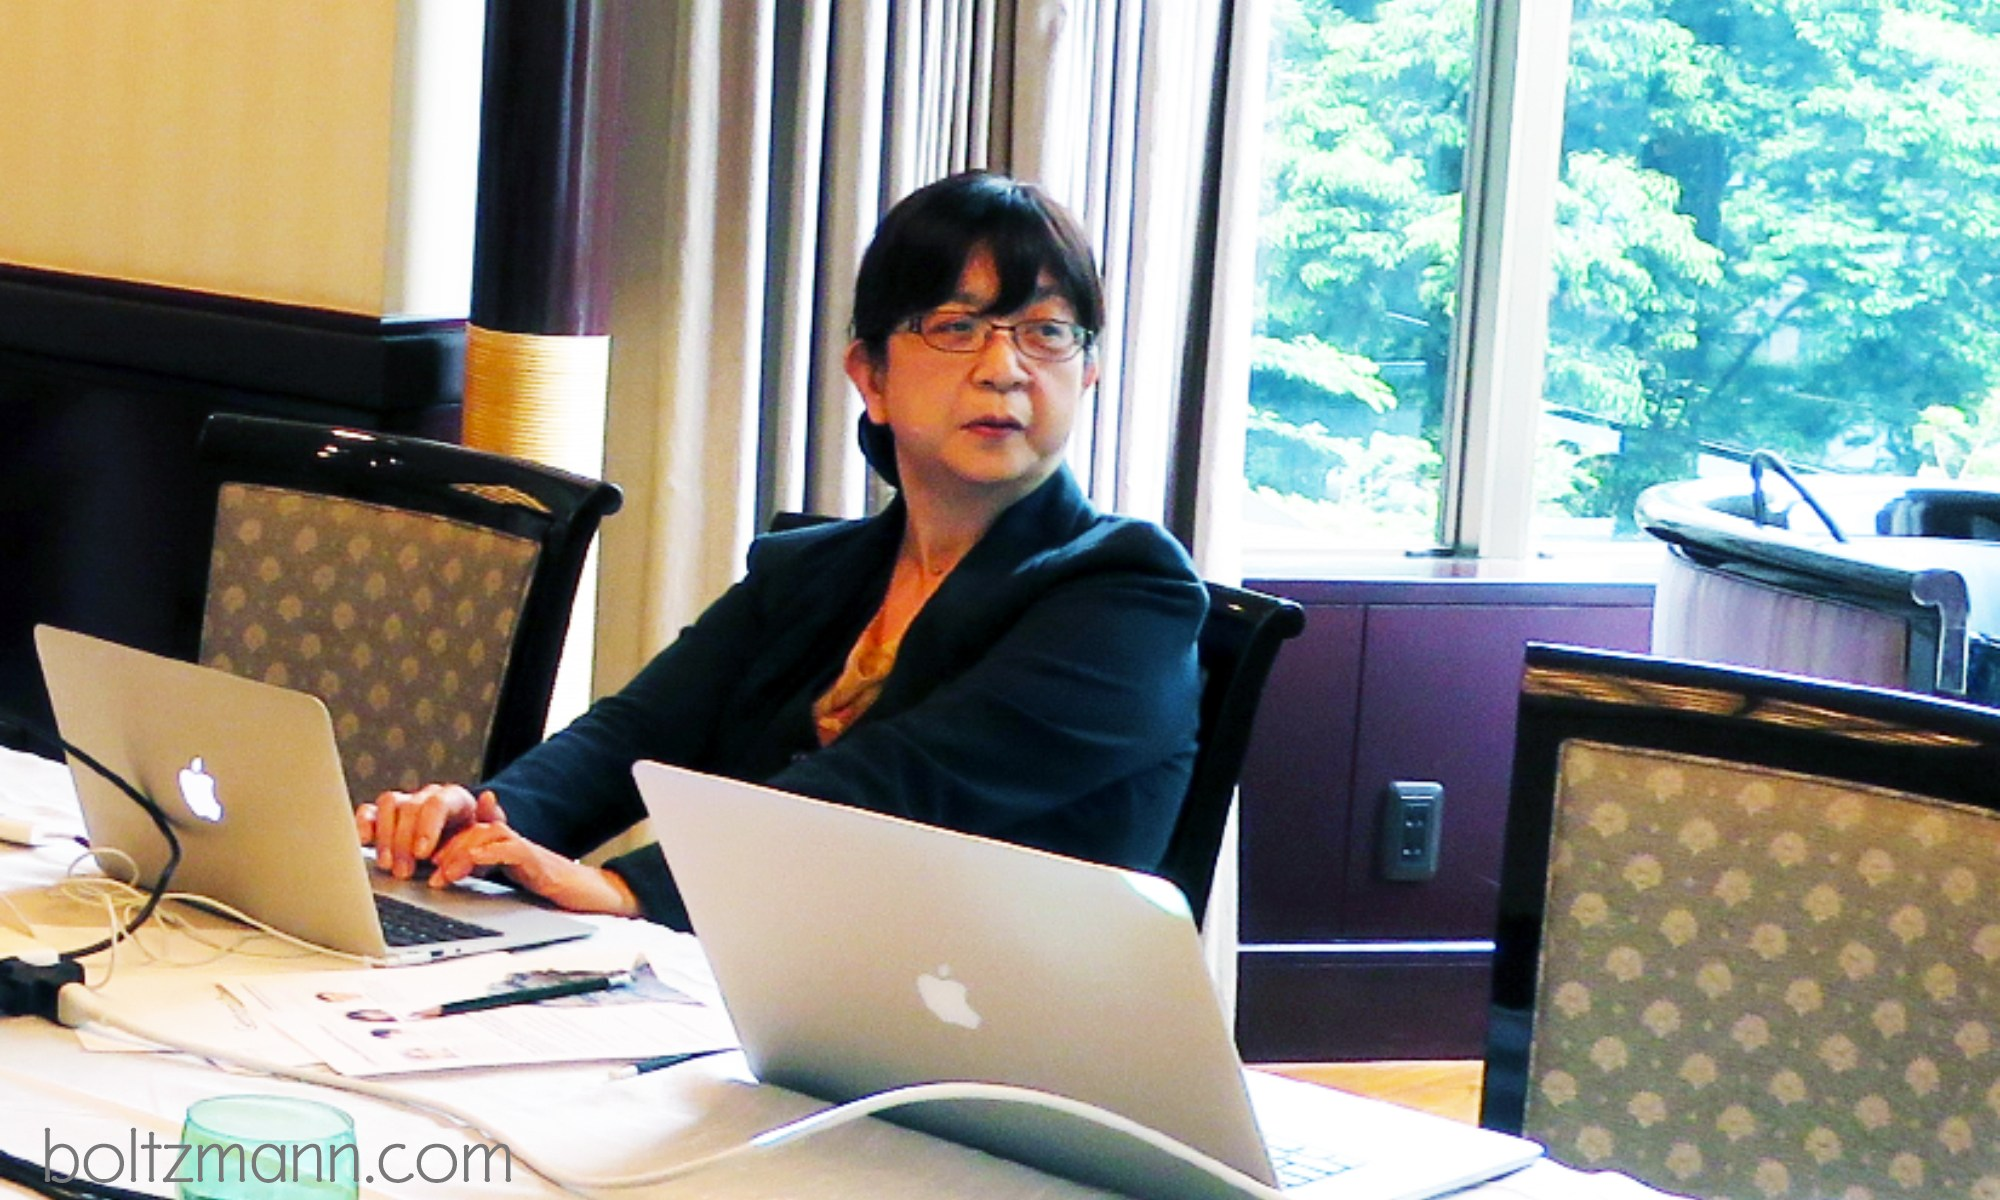 Kiyoko Kato, Professor, Department of Gynecology and Obstetrics, Graduate School of Medical Sciences, Kyushu University